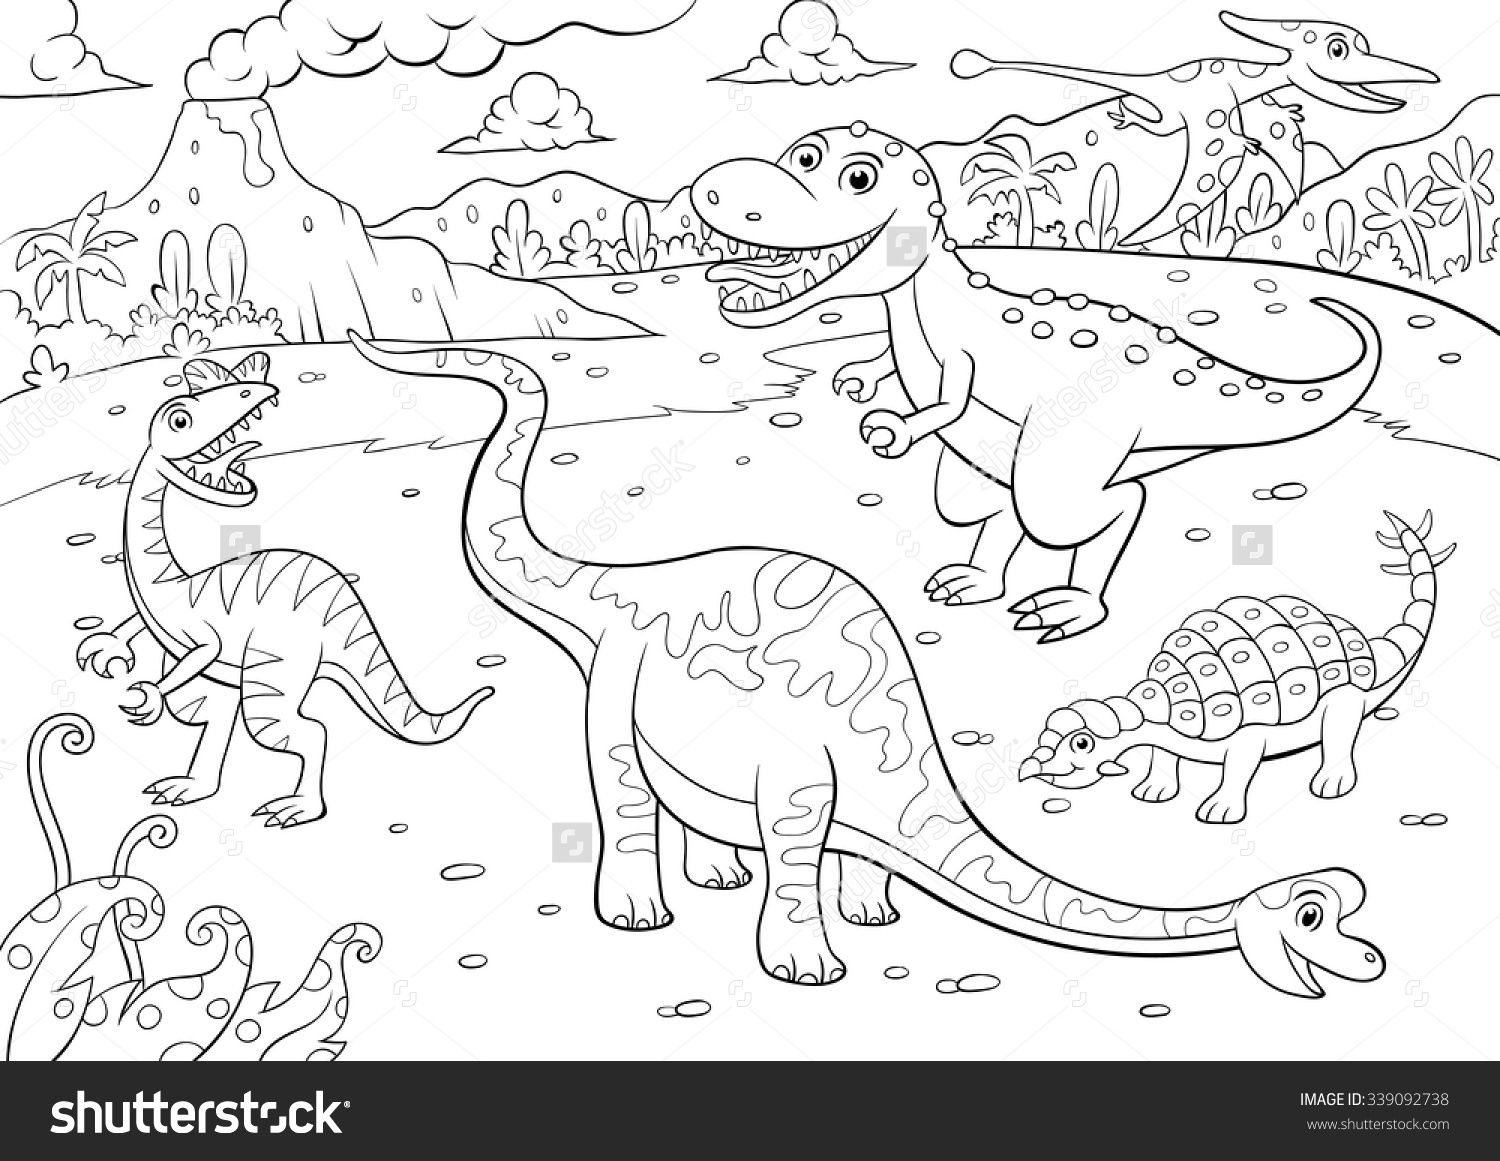 Illustration Of Cute Dinosaurs Cartoon For Coloring Eps10